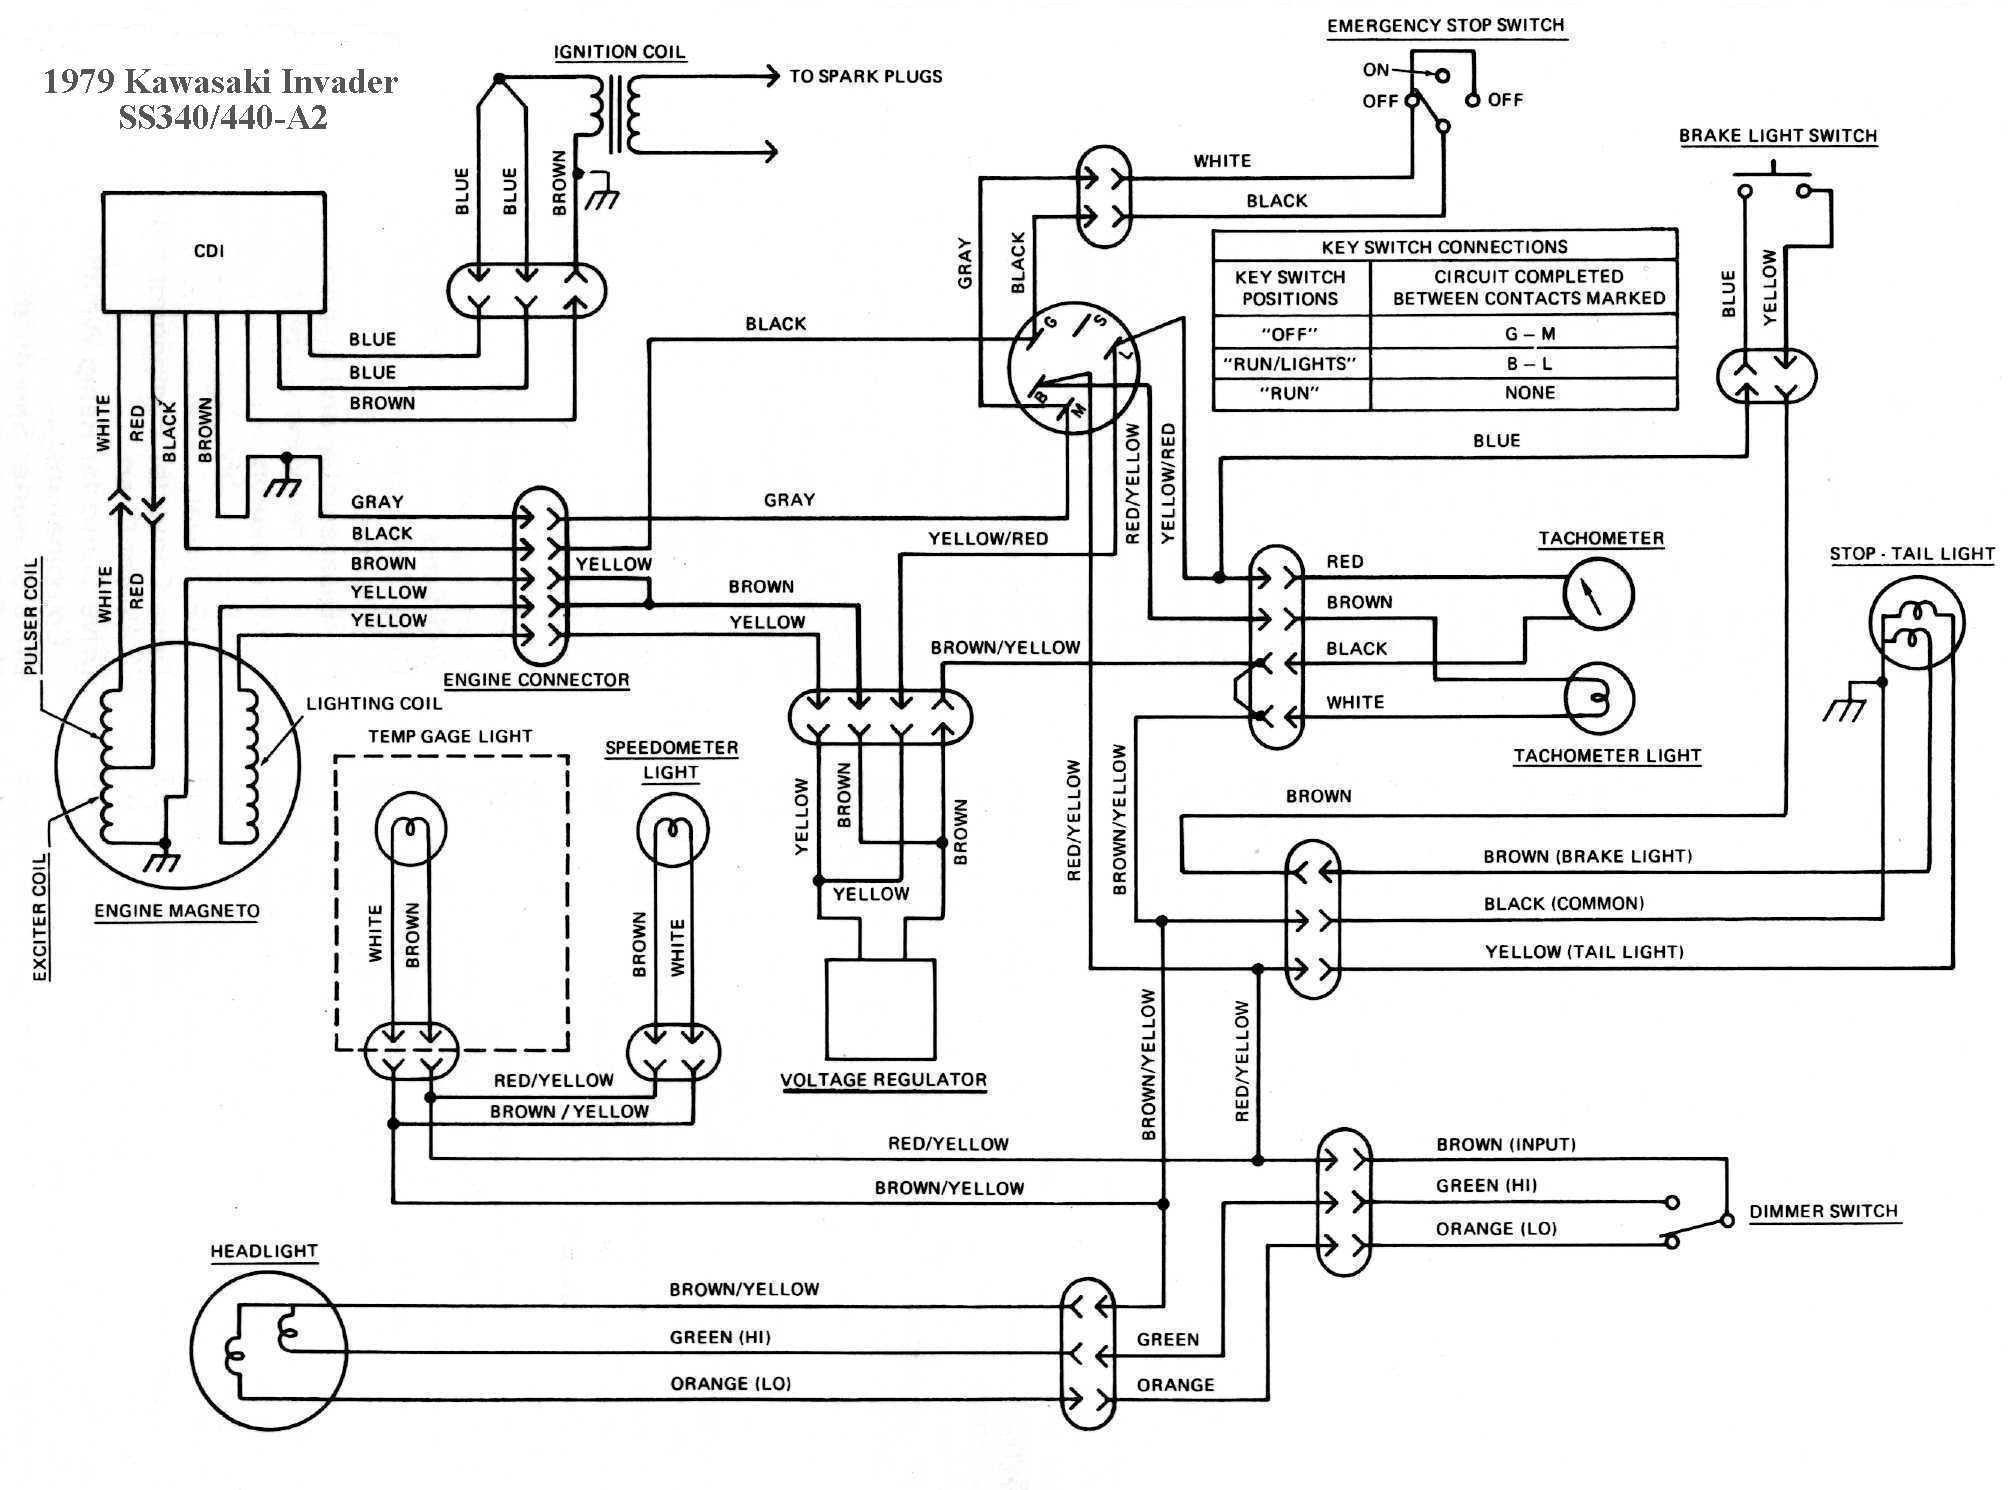 [DIAGRAM] Kawasaki Bayou Wiring Diagram FULL Version HD